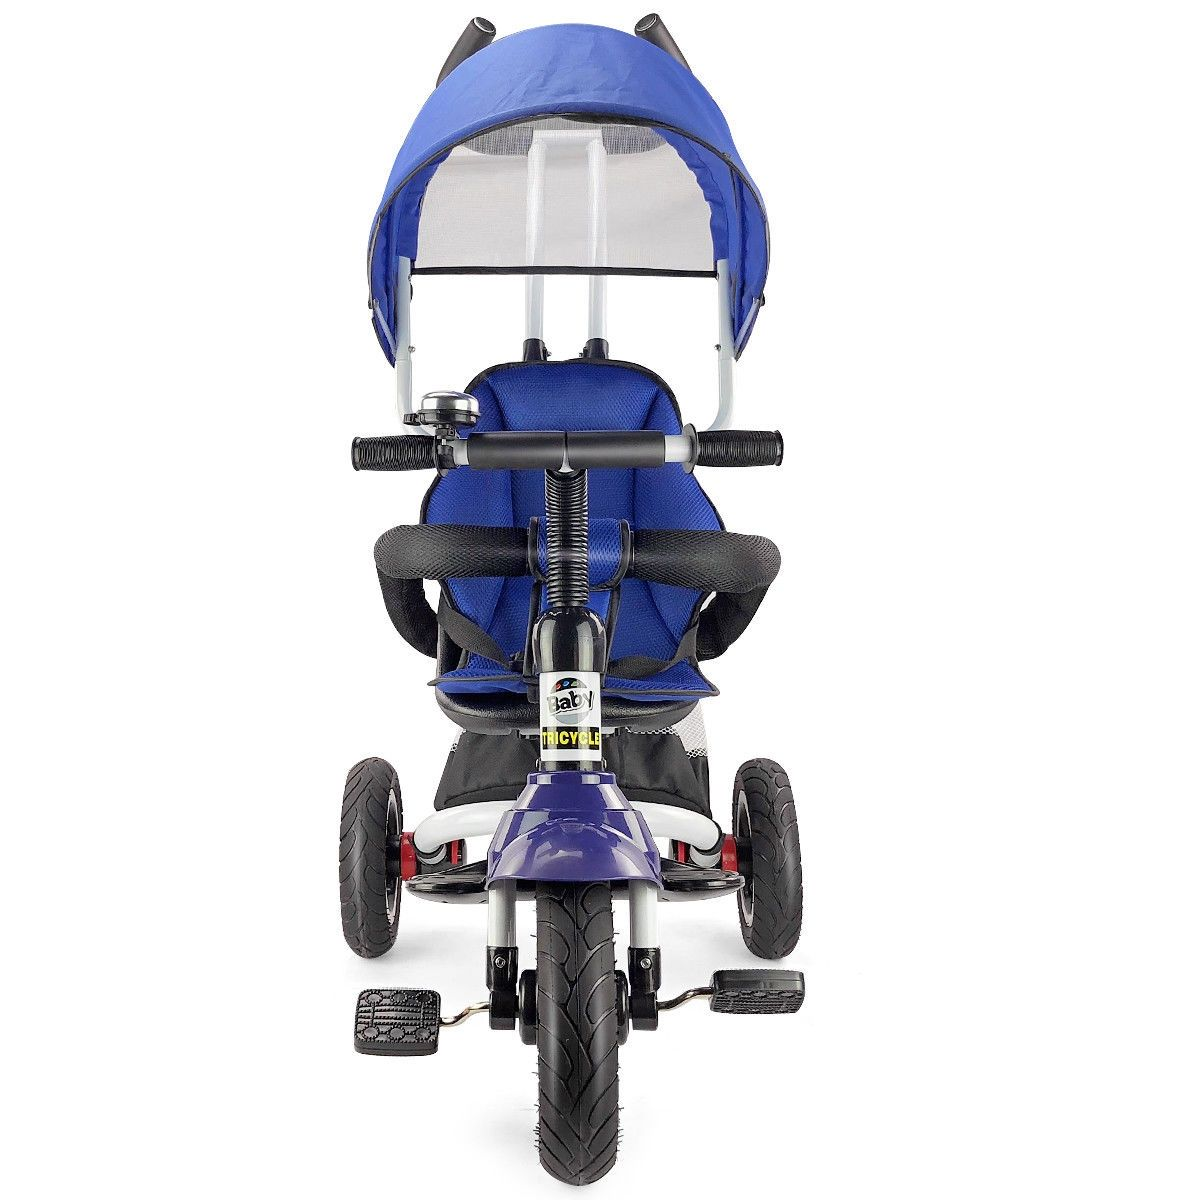 6In1 Kids Baby Stroller Tricycle Detachable Learning Toy